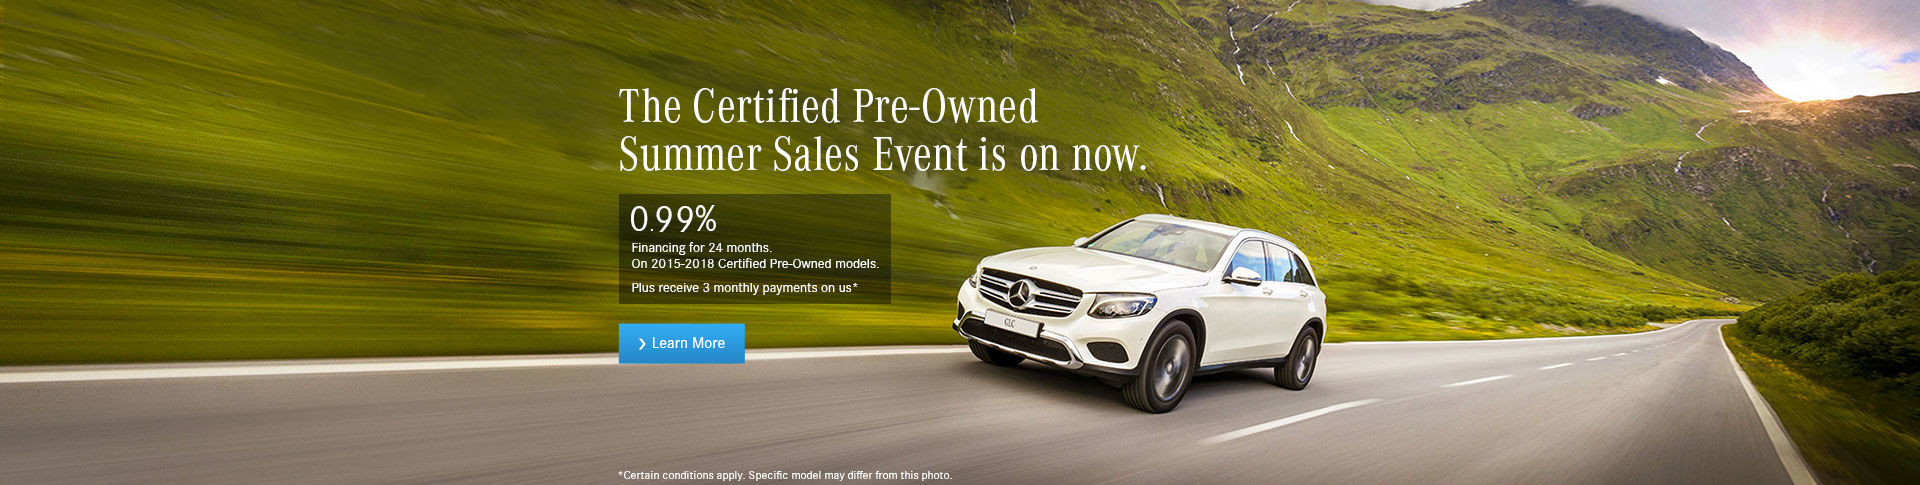 CPO Summer sales event